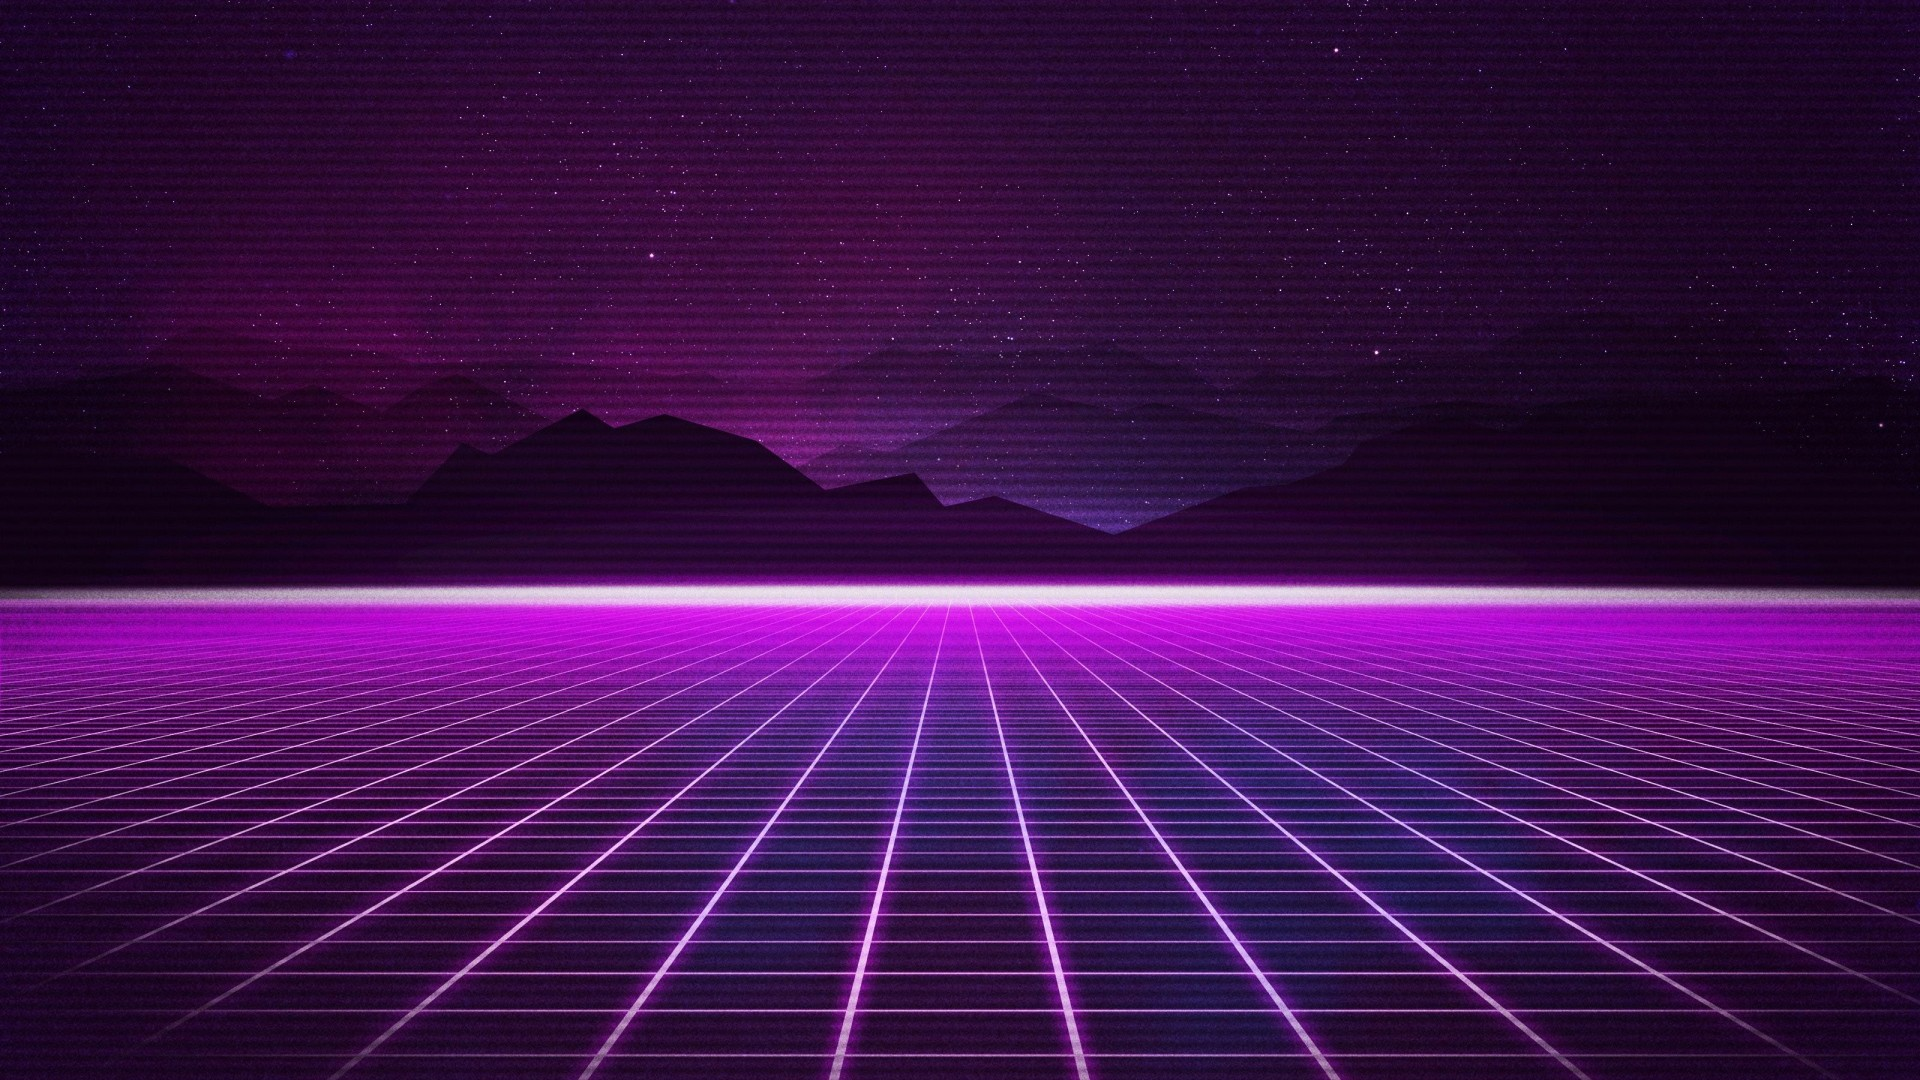 Wallpaper retrowave purple lines 4k art 18921 - Space 80s wallpaper ...